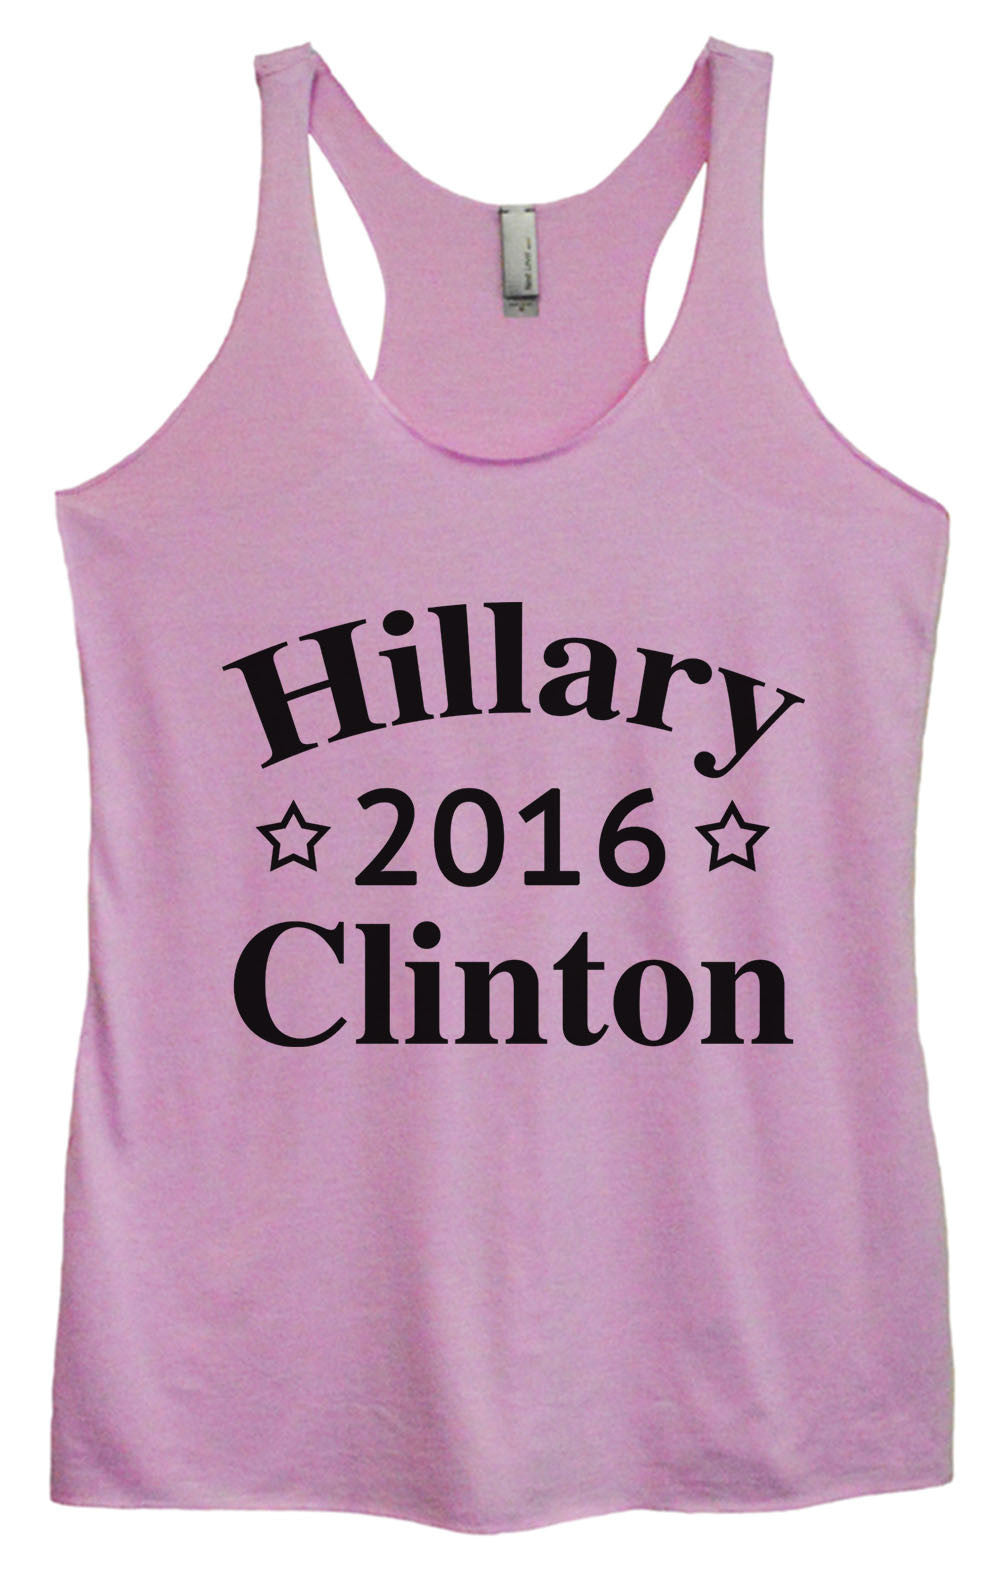 Womens Fashion Triblend Tank Top - Hillary 2016 Clinton - Tri-669 - Funny Shirts Tank Tops Burnouts and Triblends  - 4